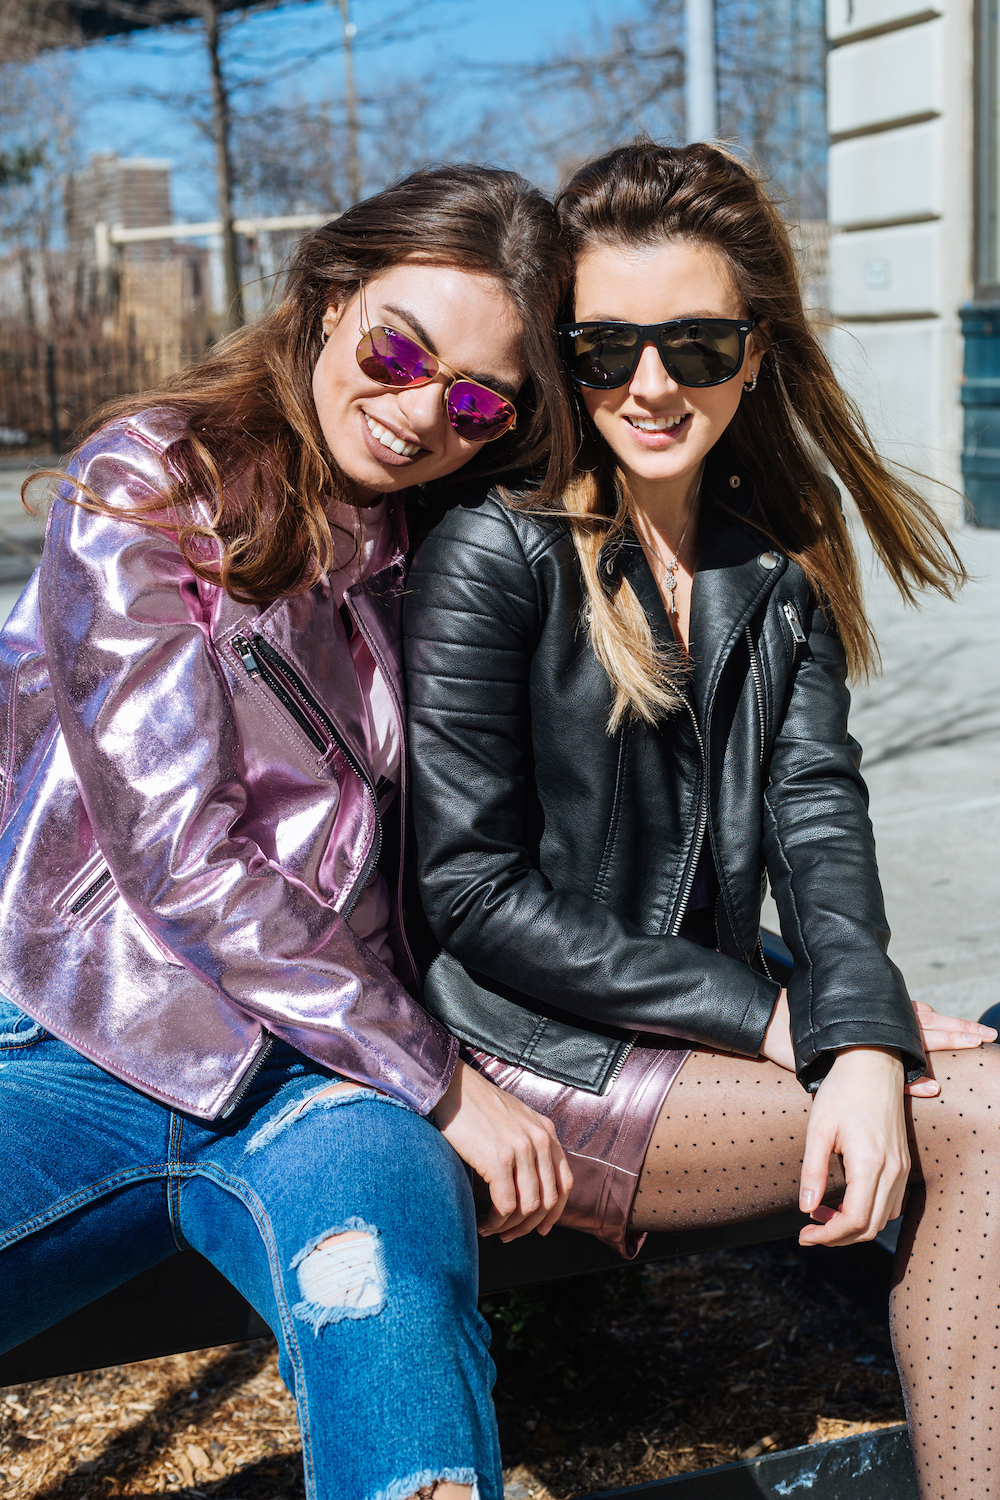 fashion-blogger-pink-look-nyc-allbuenothings-pinktrend-vinyl-bff-bffgoals-besties